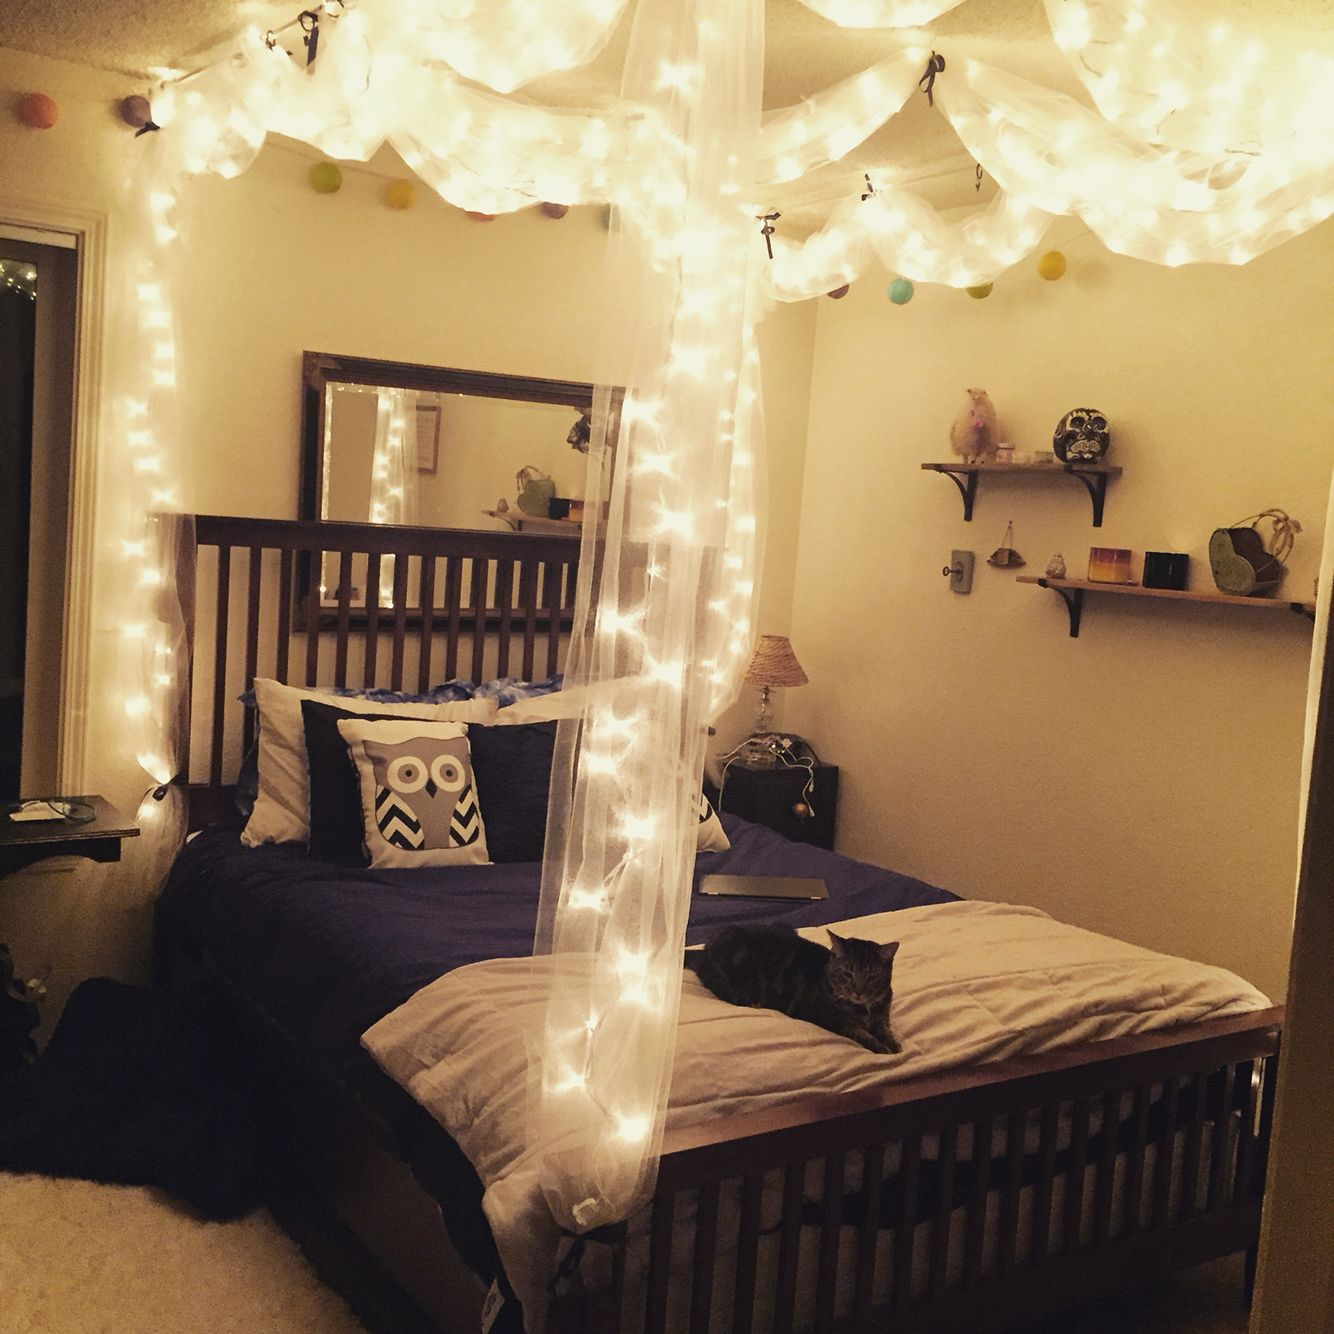 Canopy bed with lights - Diy Bed Canopy With Lights